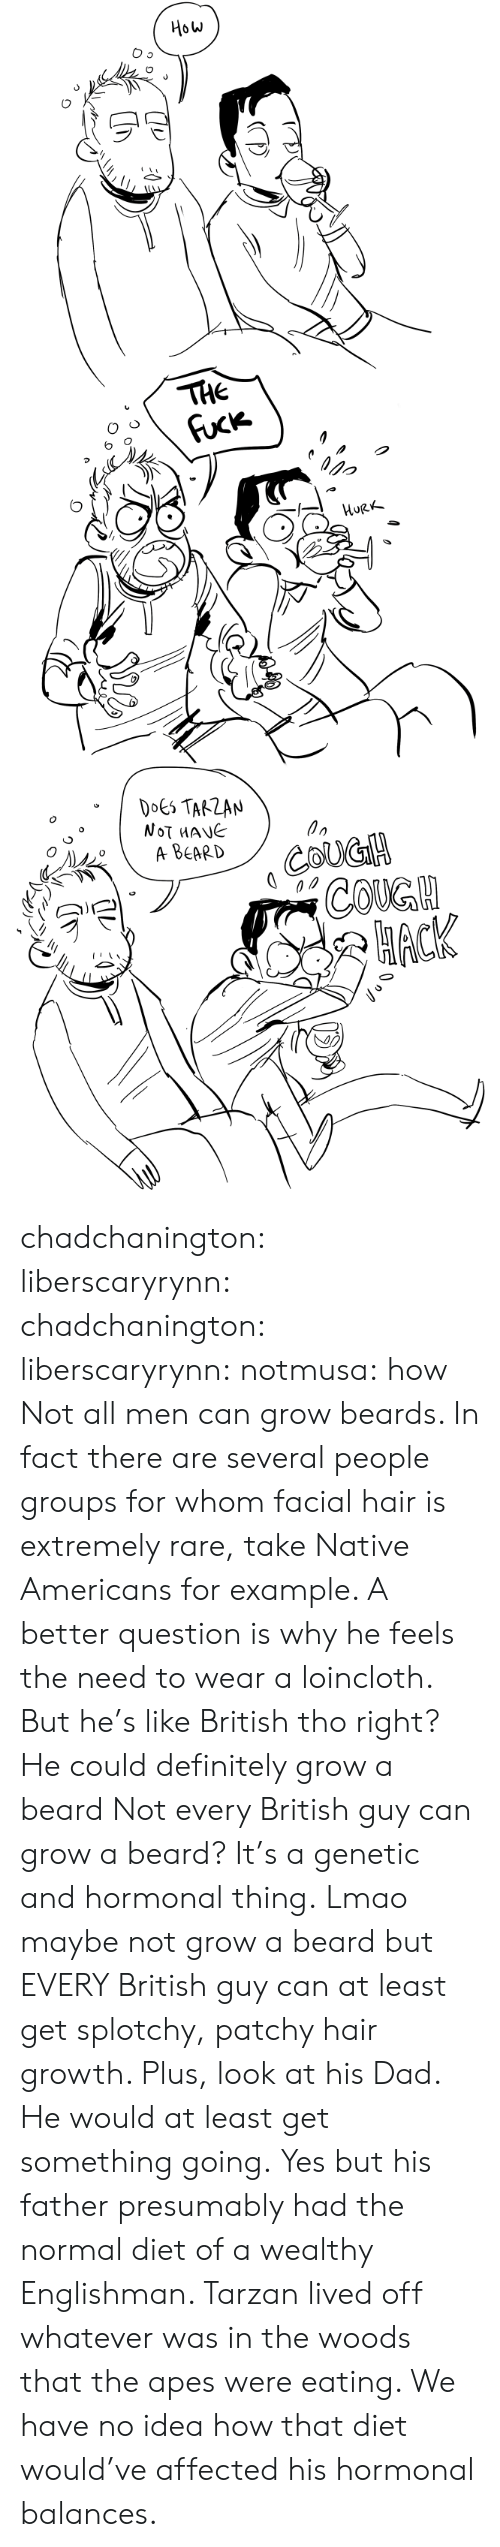 apes: How  THE  Fuck  орo  HURK  DOES TARZAN  NOT MANE  A ВЕARD  COUGH  СOKGH  НАСК chadchanington:  liberscaryrynn:  chadchanington:  liberscaryrynn:  notmusa:  how  Not all men can grow beards. In fact there are several people groups for whom facial hair is extremely rare, take Native Americans for example. A better question is why he feels the need to wear a loincloth.  But he's like British tho right? He could definitely grow a beard  Not every British guy can grow a beard? It's a genetic and hormonal thing.  Lmao maybe not grow a beard but EVERY British guy can at least get splotchy, patchy hair growth. Plus, look at his Dad. He would at least get something going.  Yes but his father presumably had the normal diet of a wealthy Englishman. Tarzan lived off whatever was in the woods that the apes were eating. We have no idea how that diet would've affected his hormonal balances.